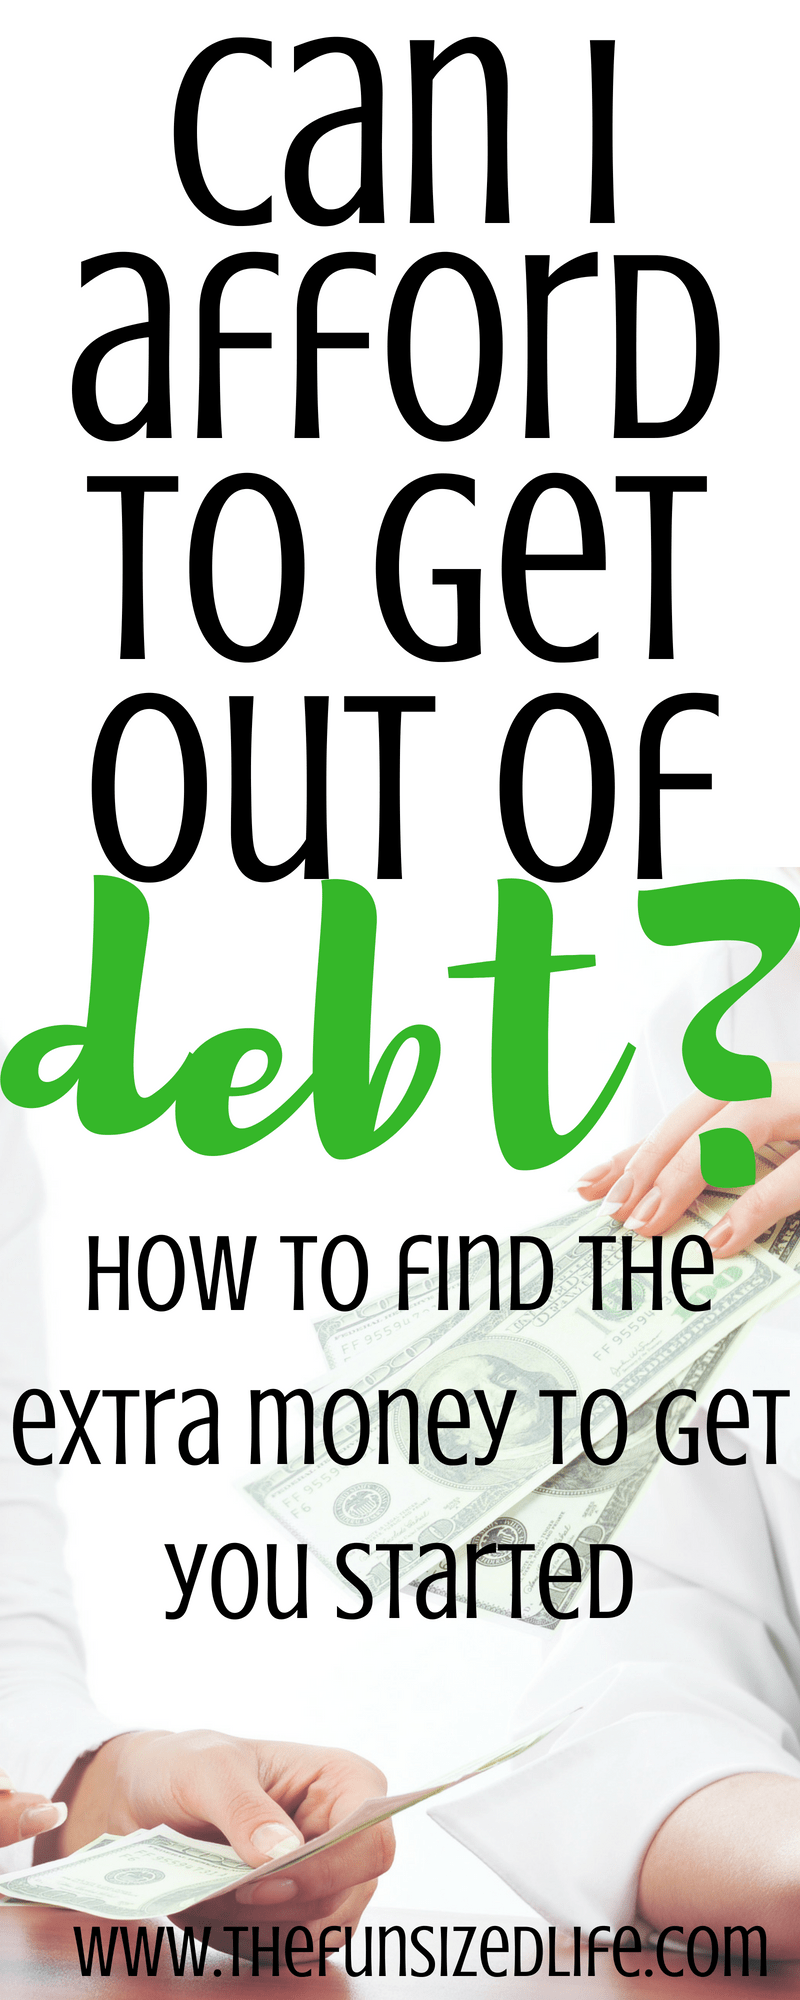 I never knew how in the world to find extra money! This lays it out plain and simple! #finances #getoutofdebt #debtpayoff #debtsnowball